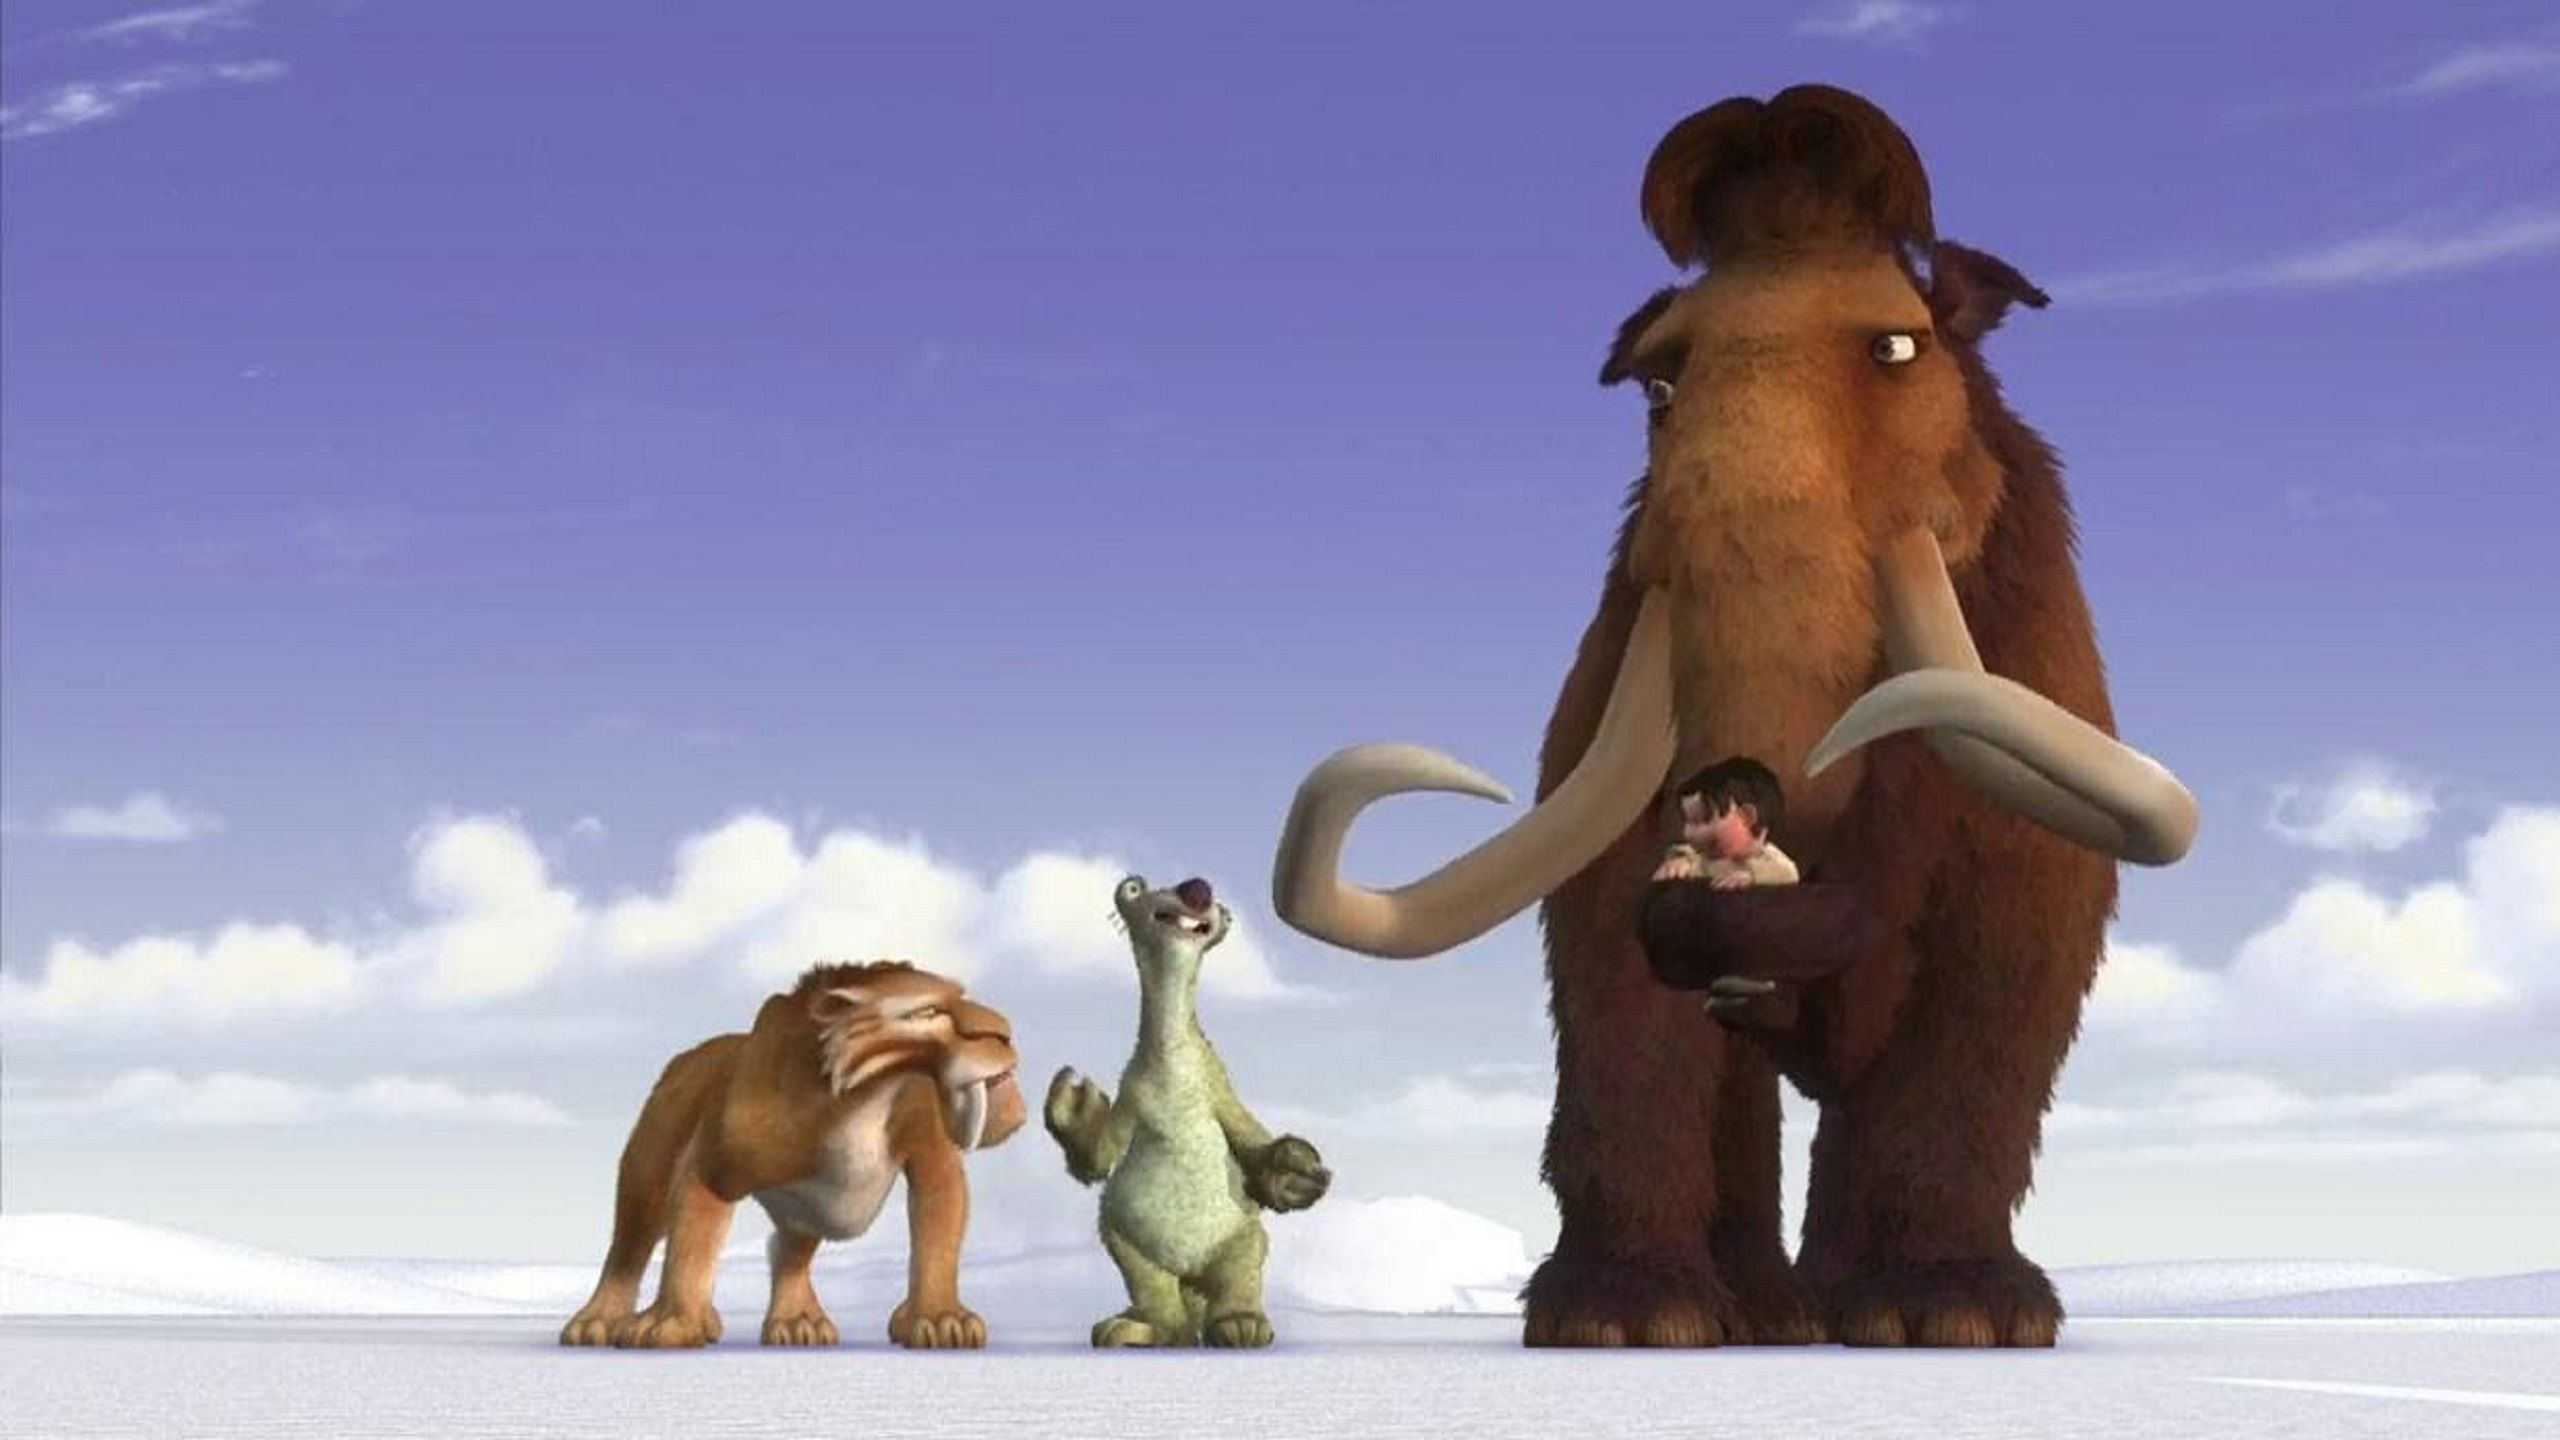 ICE Age first movie 2002 animated funny adventure friends walking